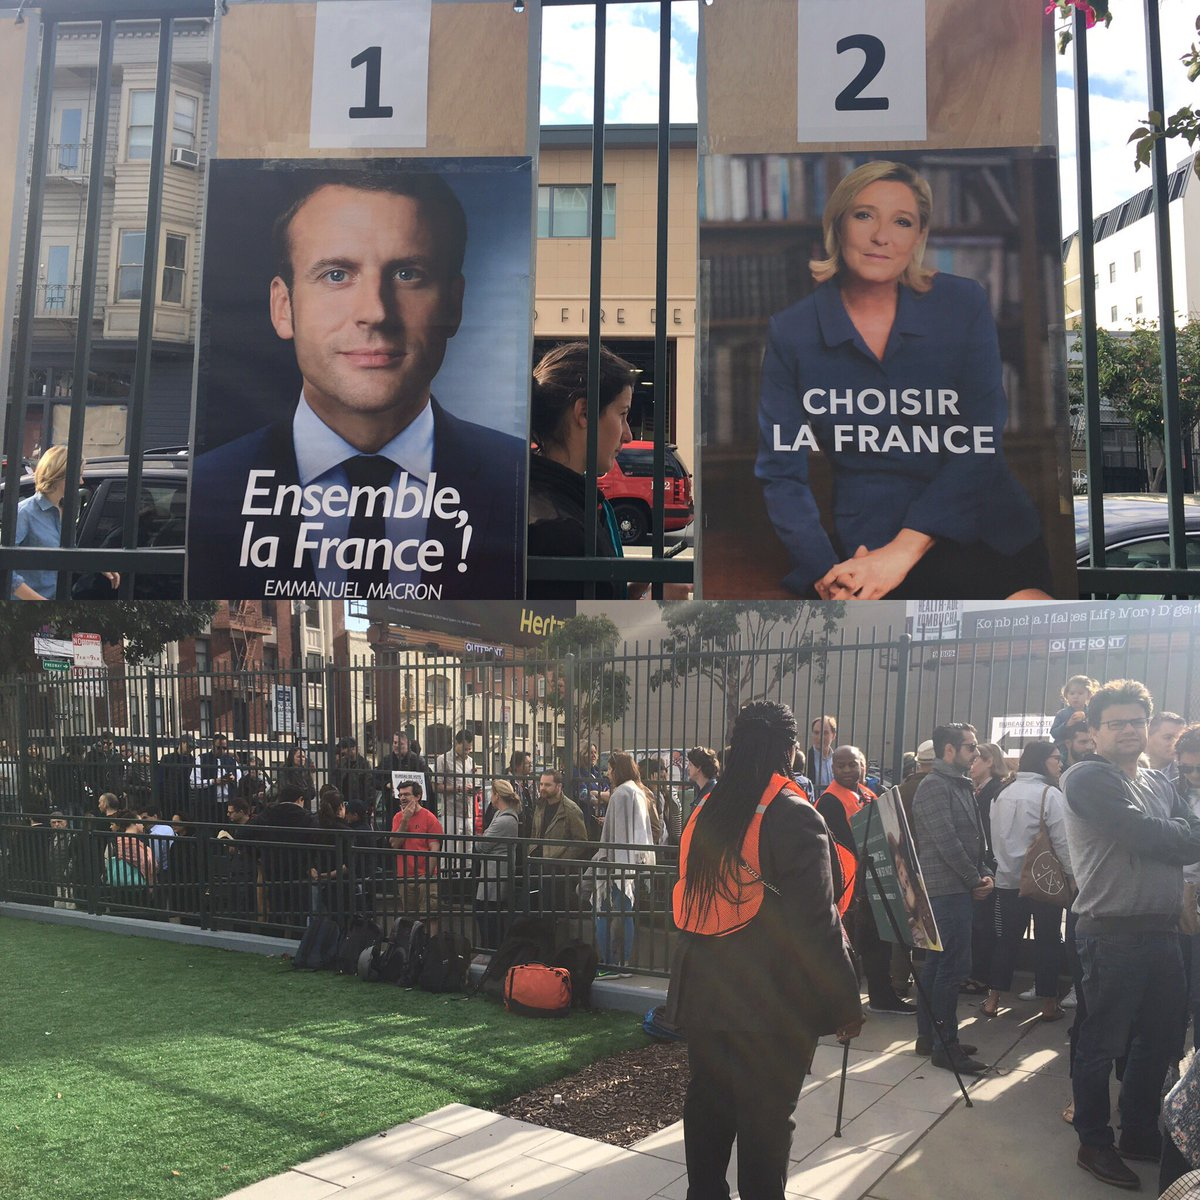 Early vote in The US to elect French next president. La France! #SanFrancisco #2emeTour #ElectionsPresidentielles2017 #Presidentielle2017<br>http://pic.twitter.com/VPYVM6sEi6